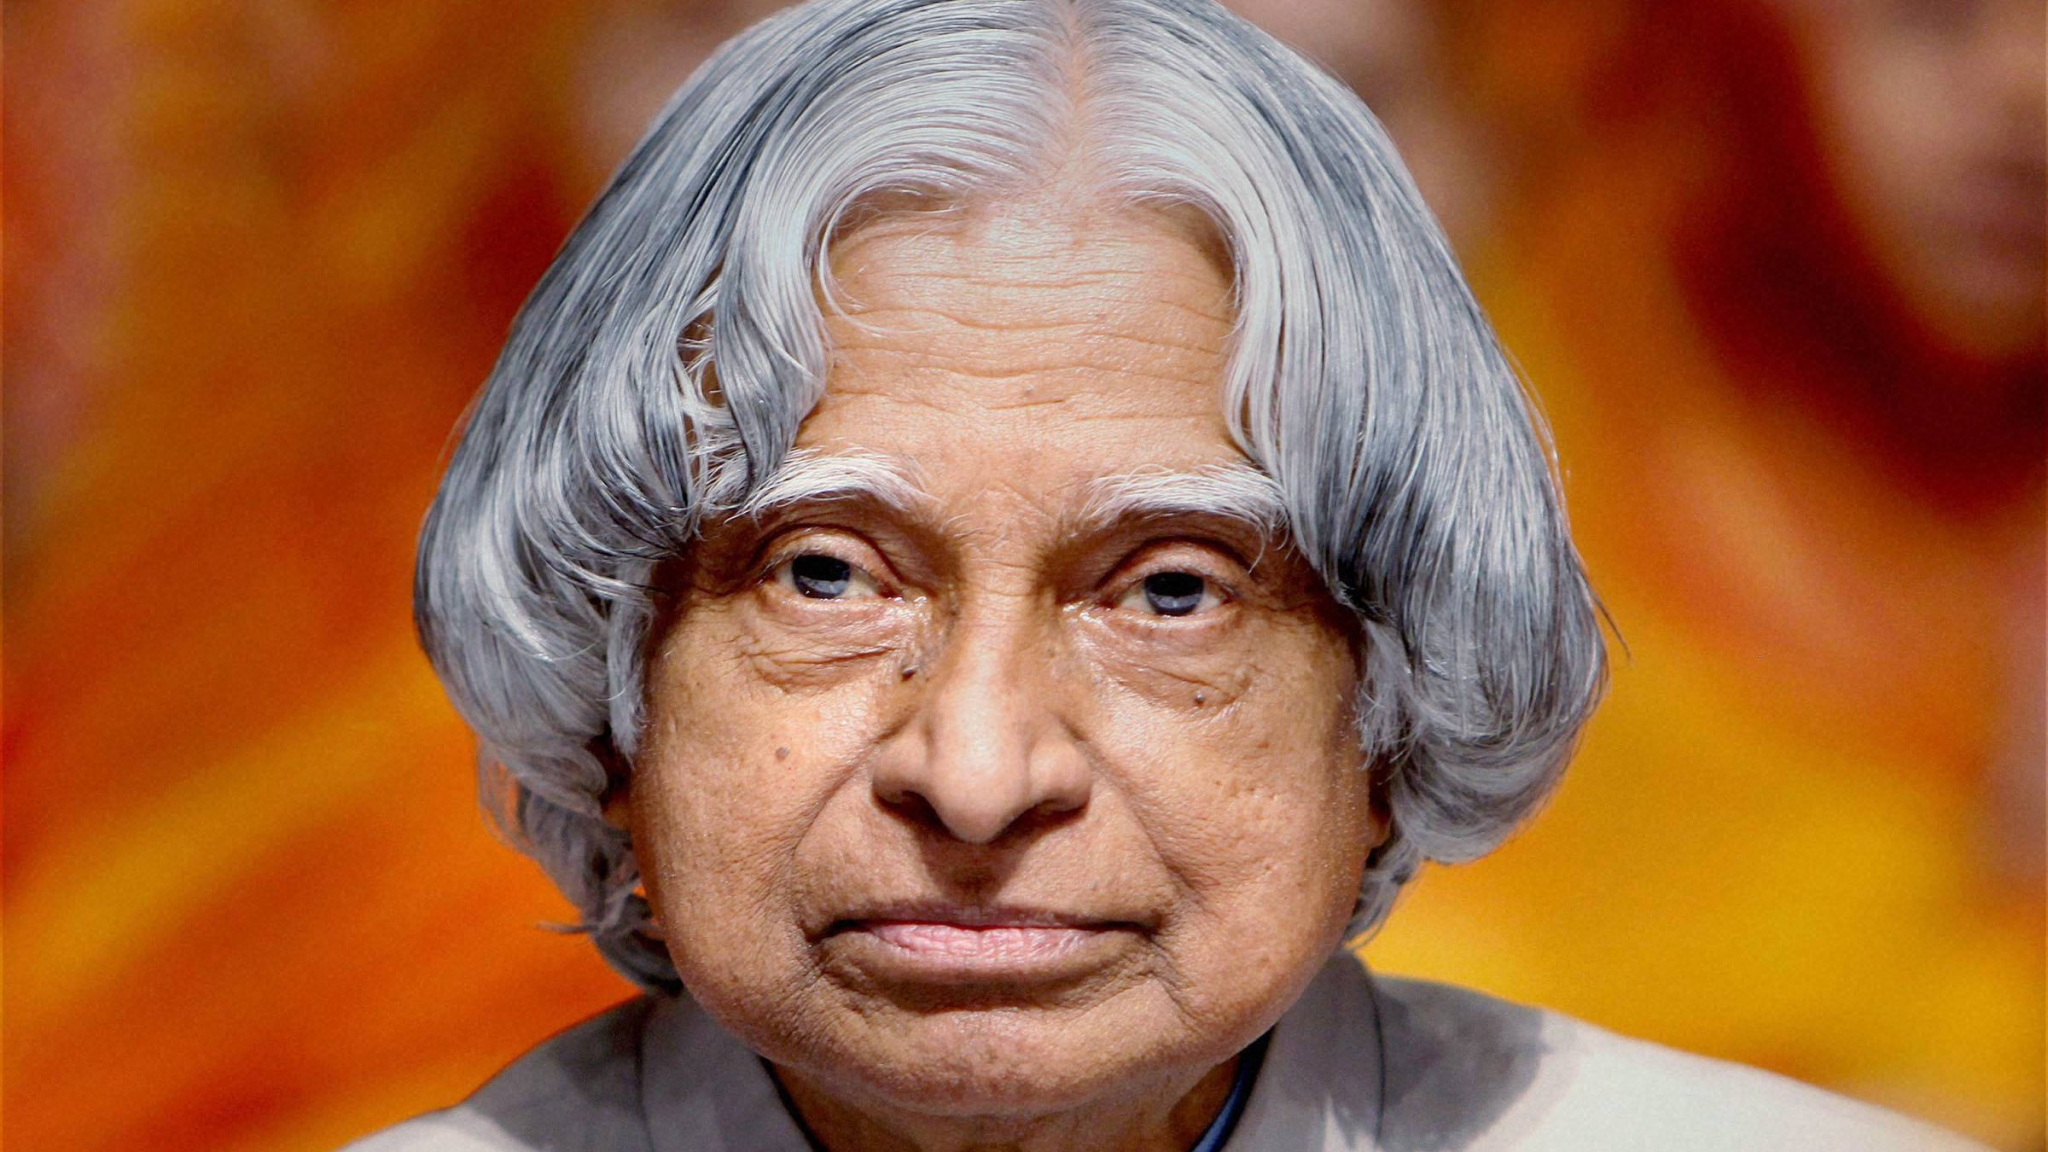 abdul kalam personality i admire the most